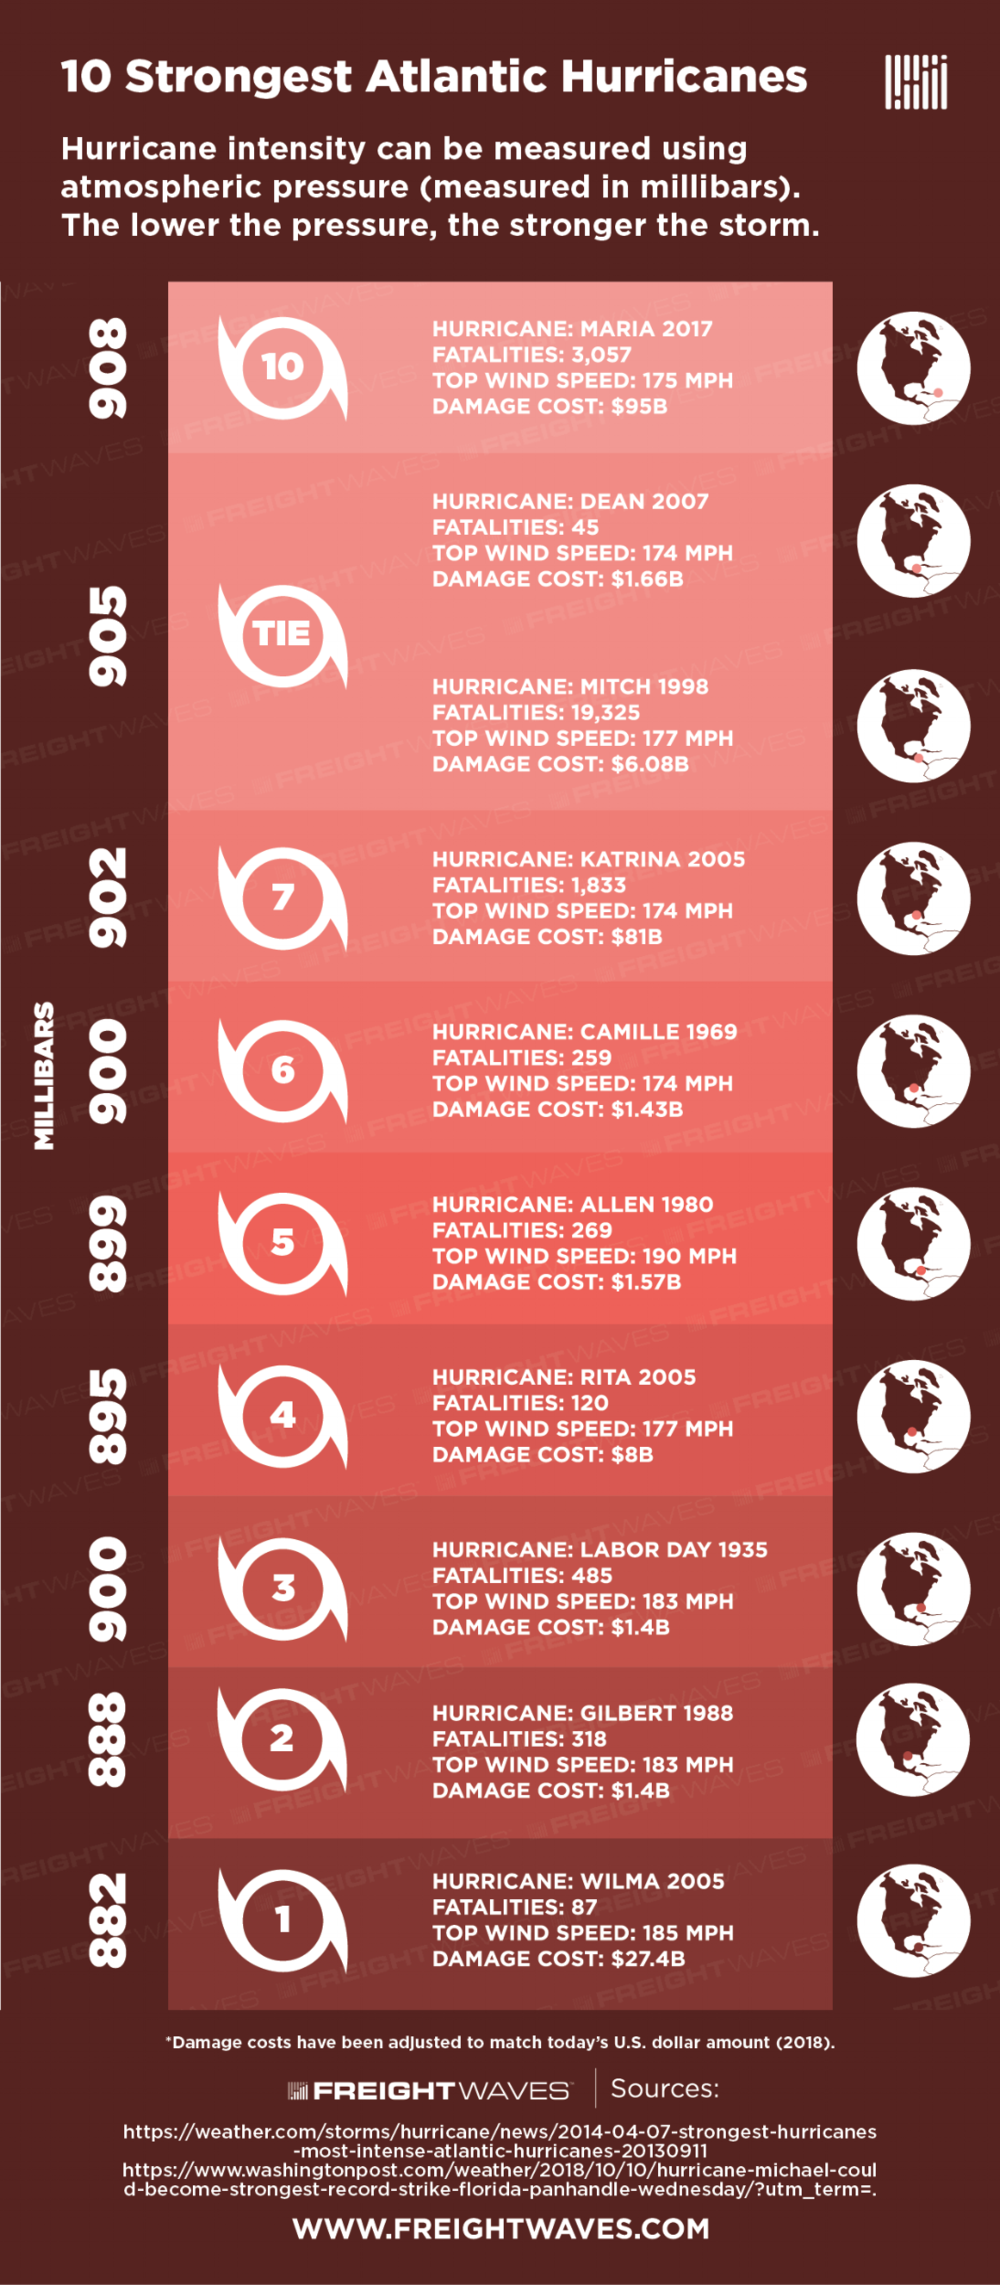 10-strongest-hurricanes-infographic-by-freightwaves.png